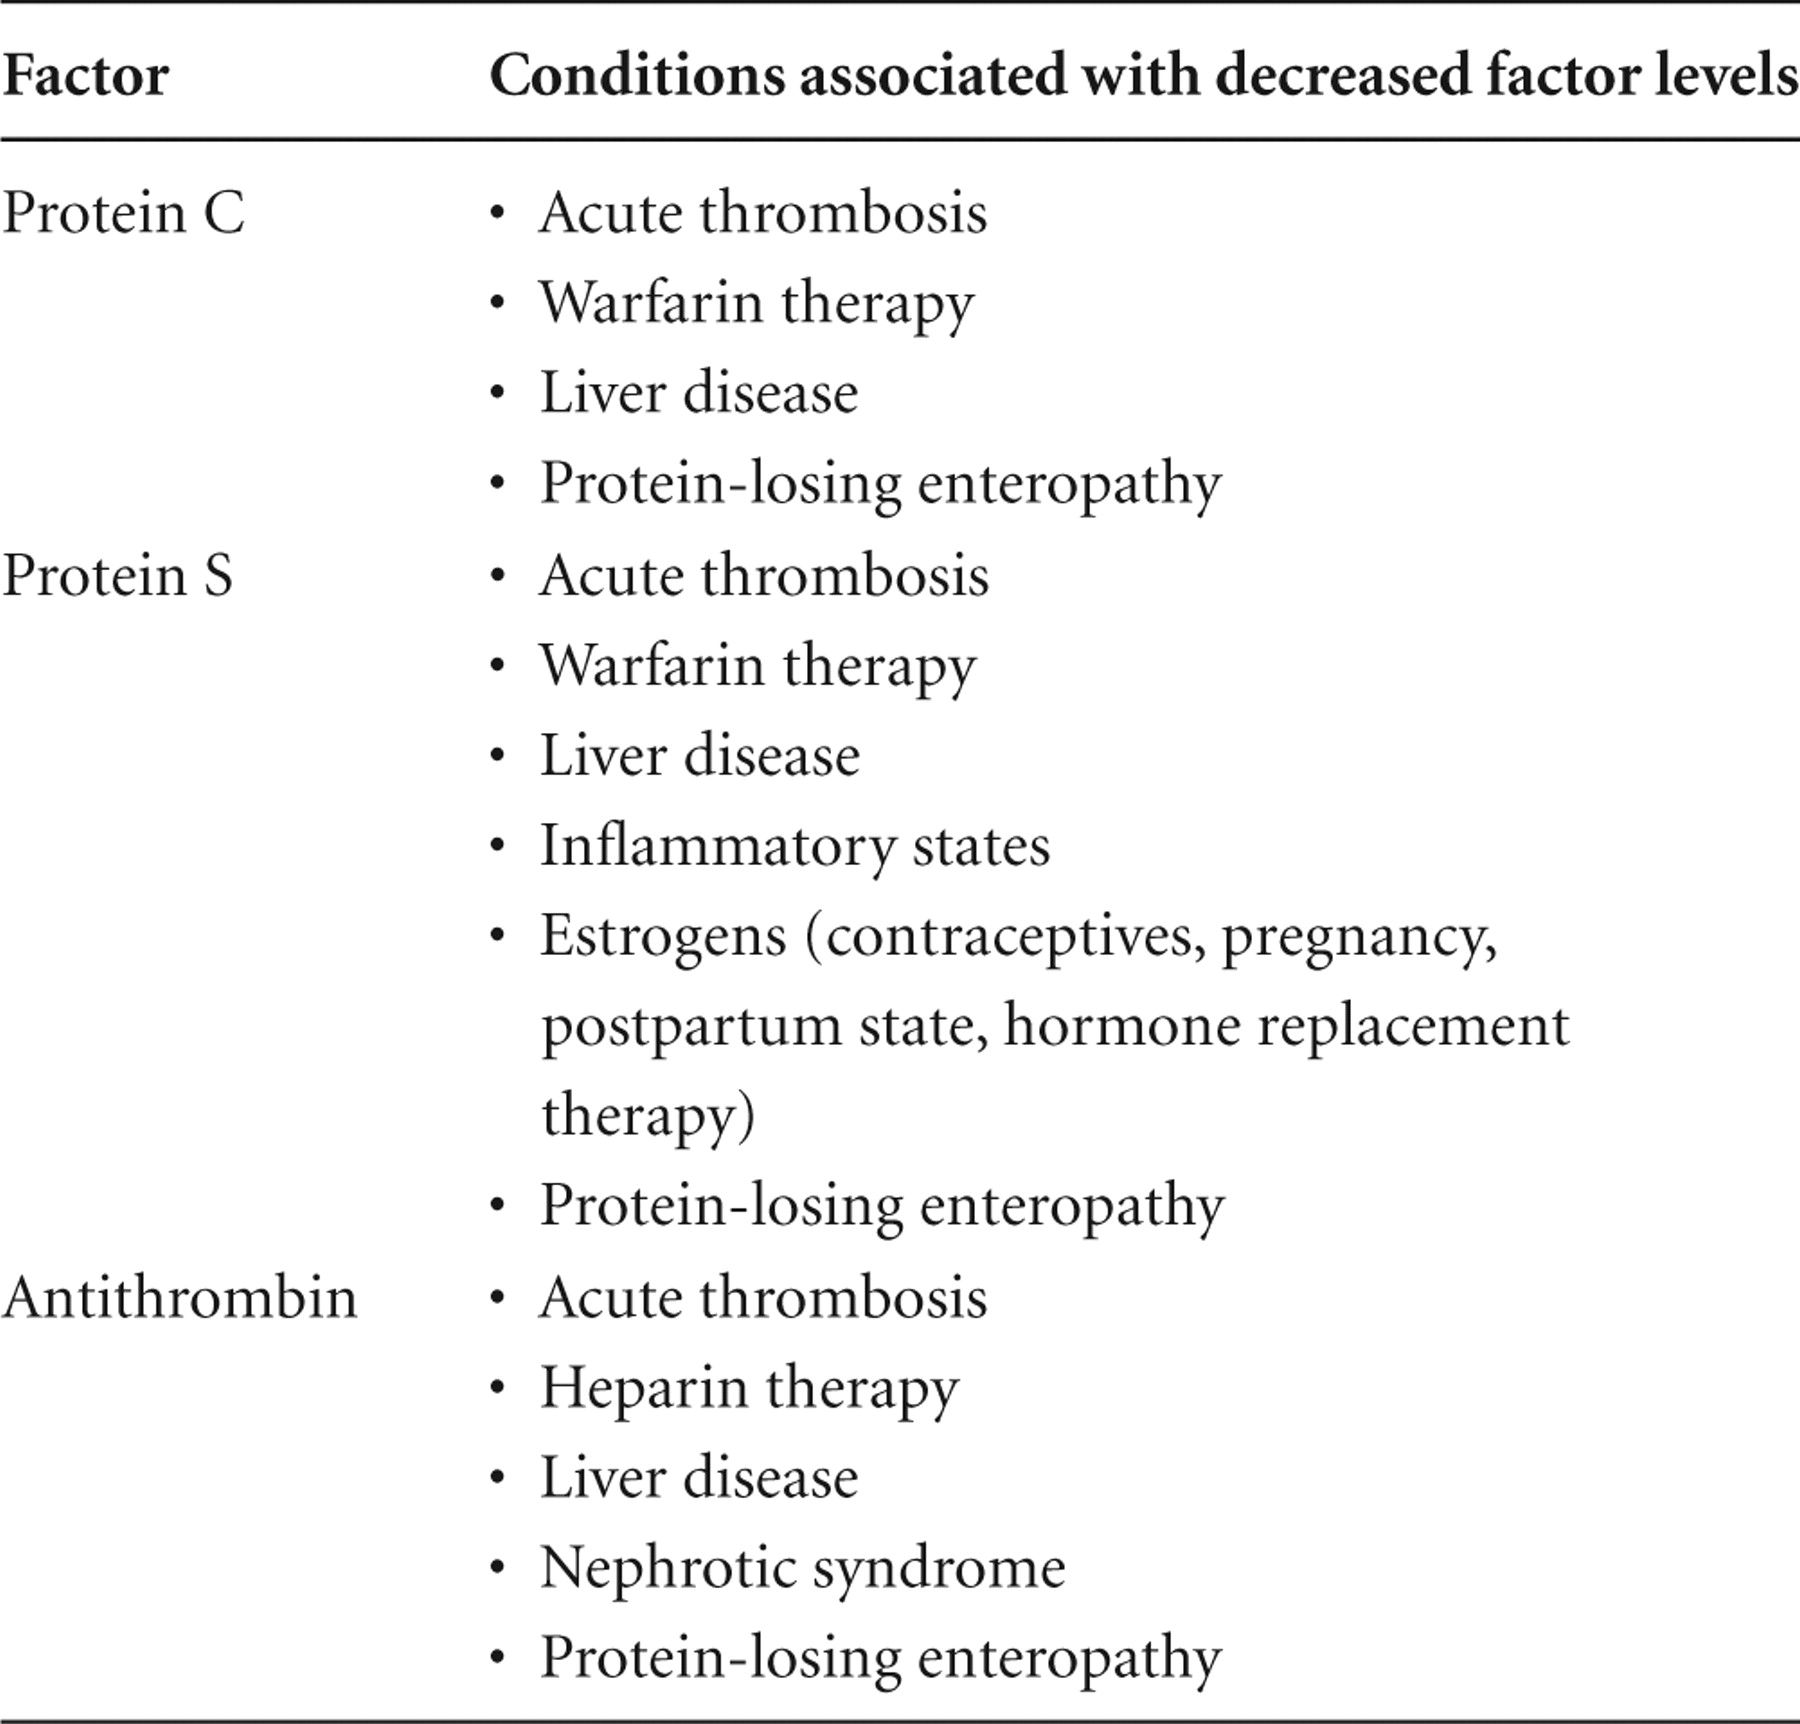 Conditions Associated With Acquired Coagulation Factor